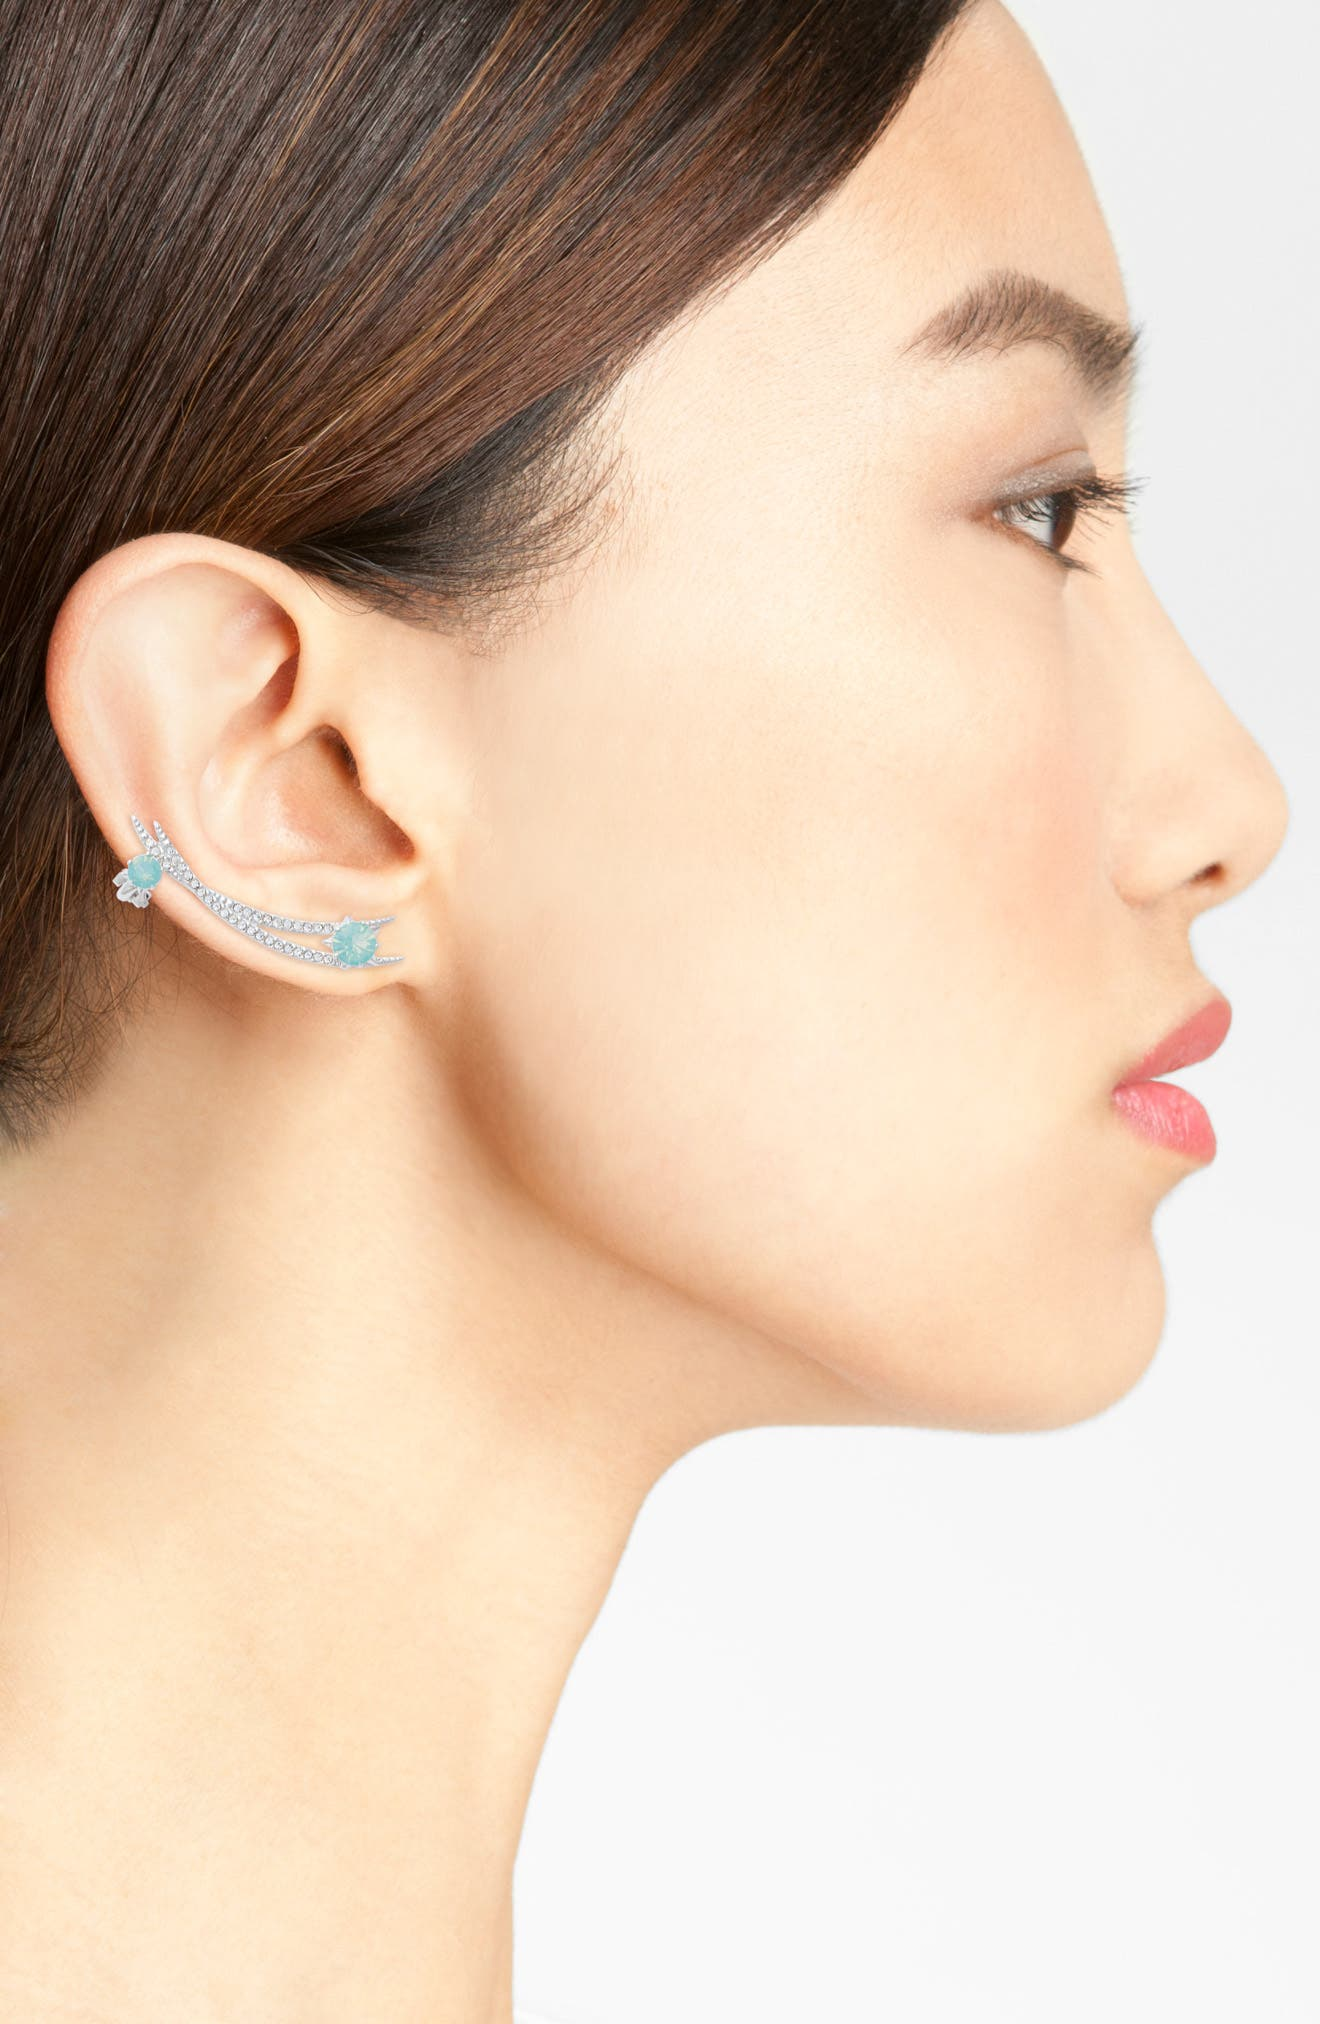 Wishes Linear Stud Earrings,                             Alternate thumbnail 2, color,                             300